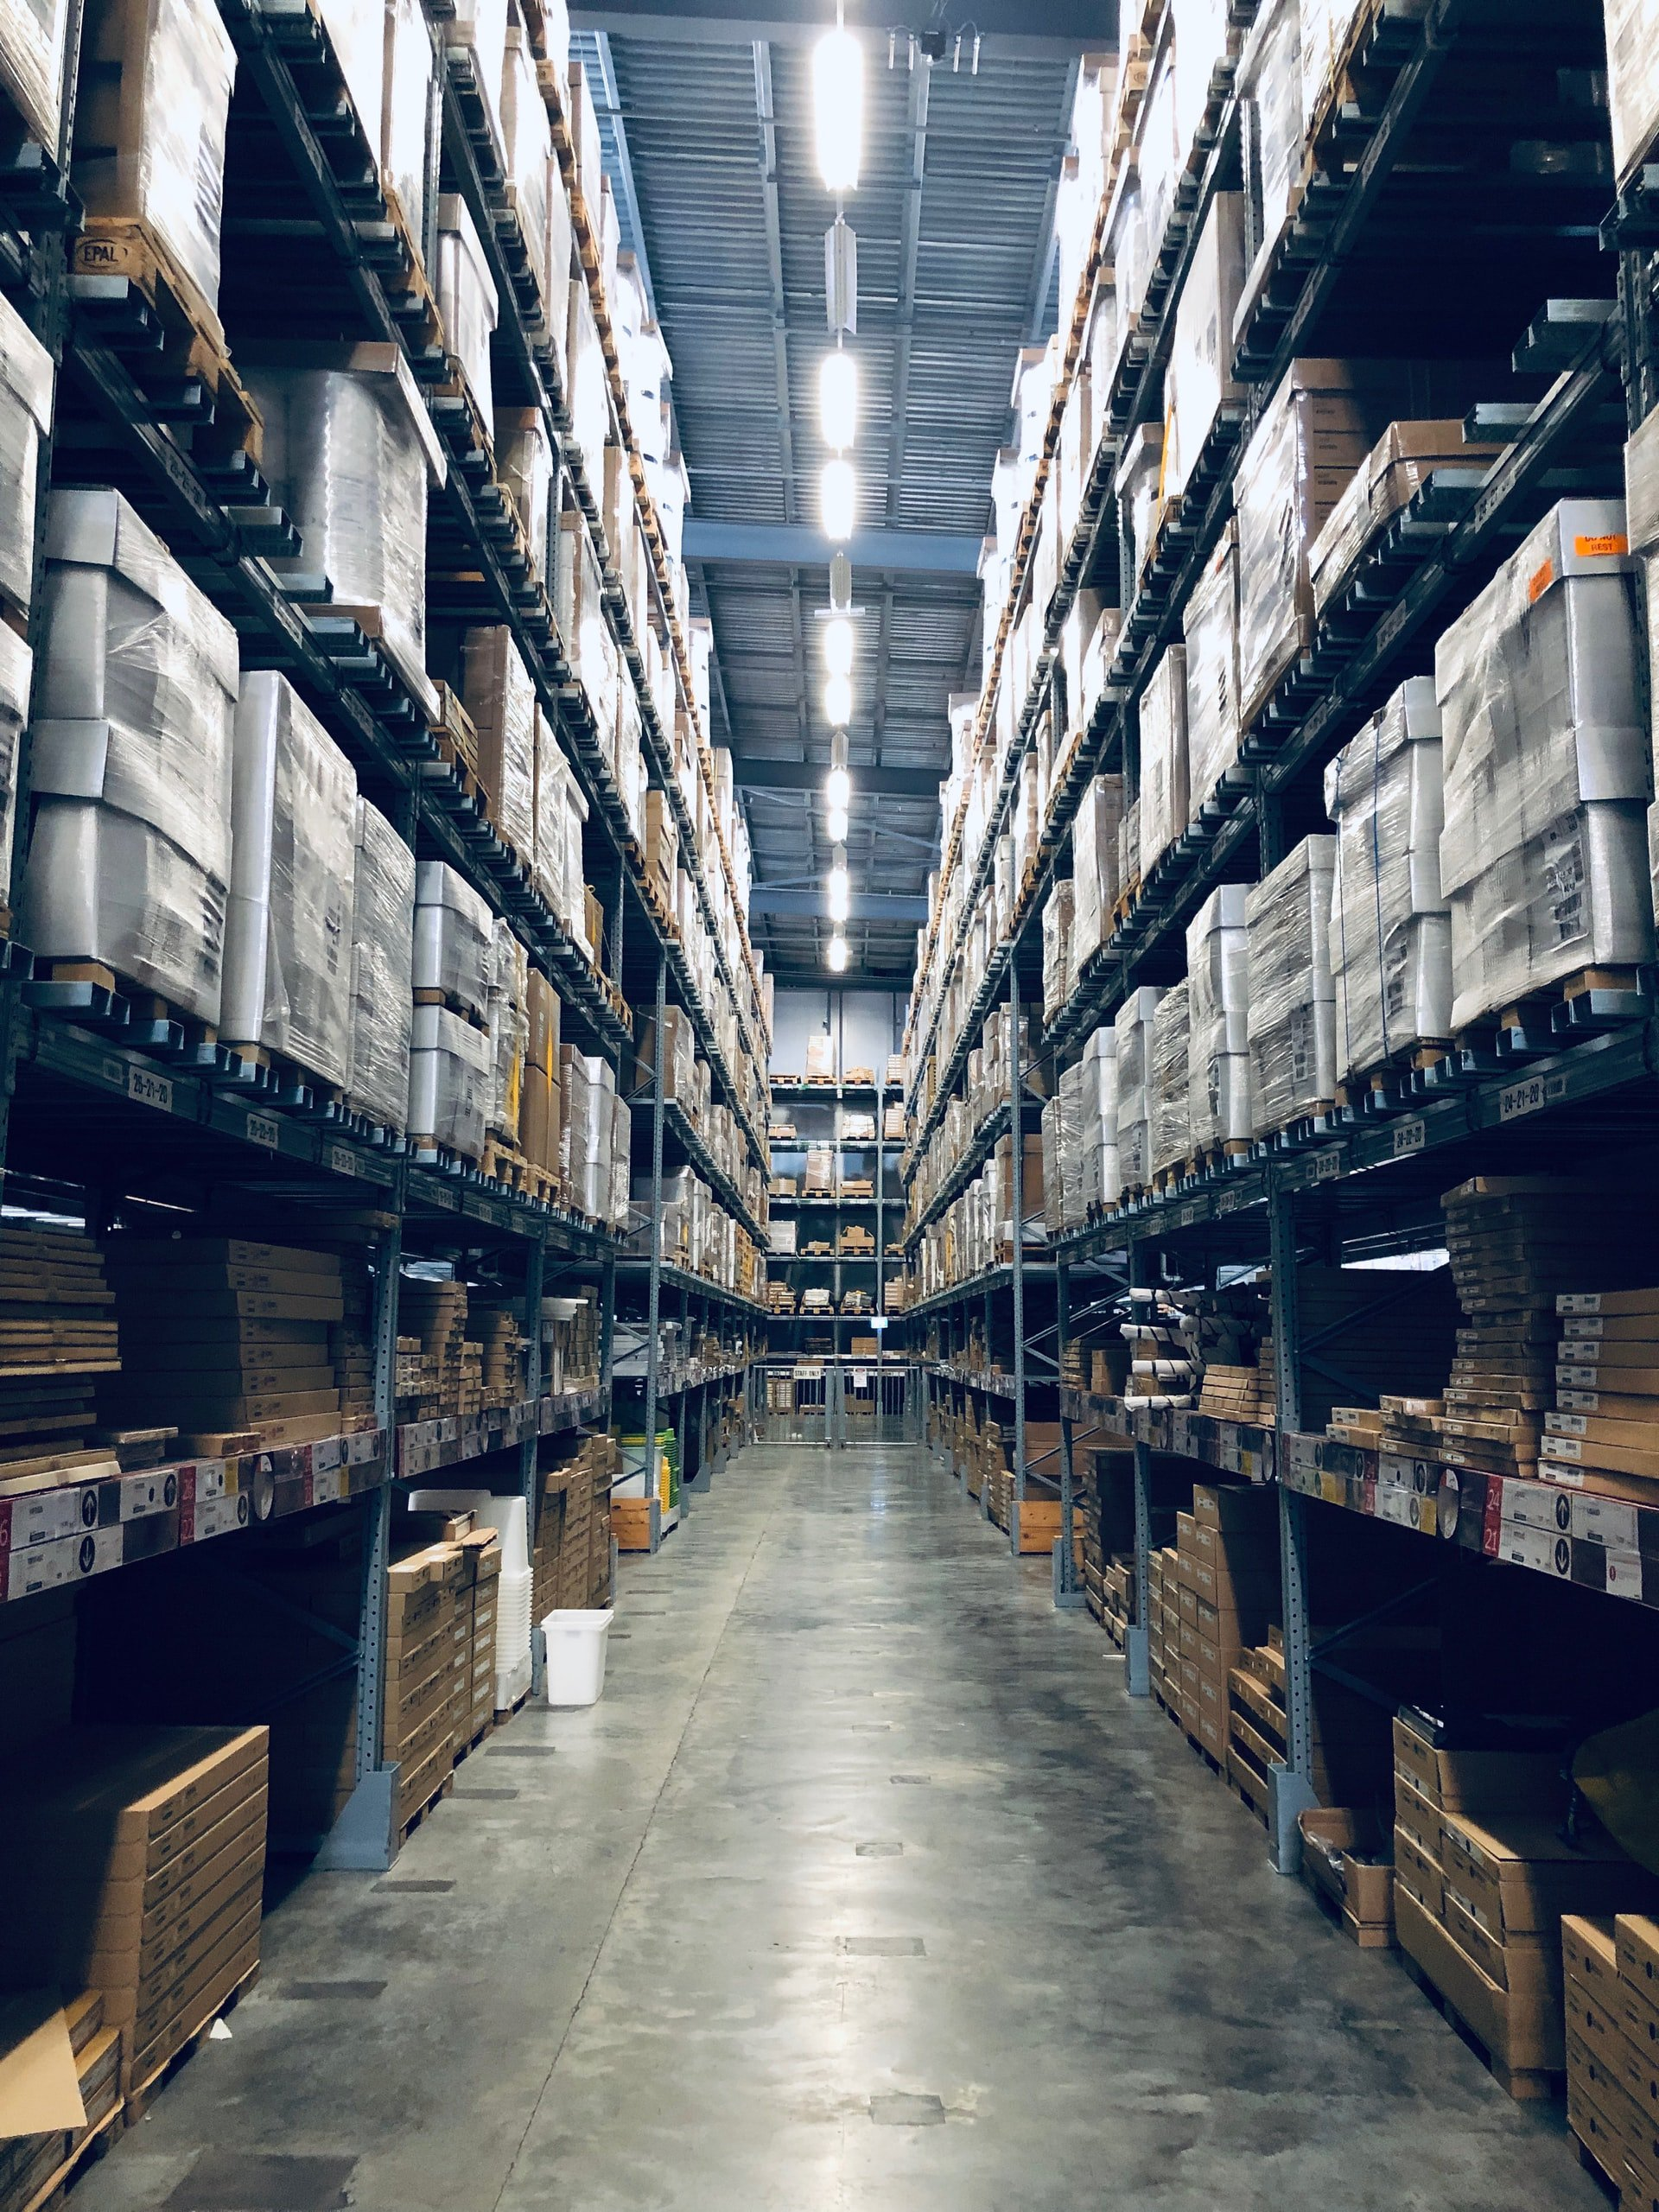 corrugated packaging in warehouse - WestRock casetudy - WayPath Consulting